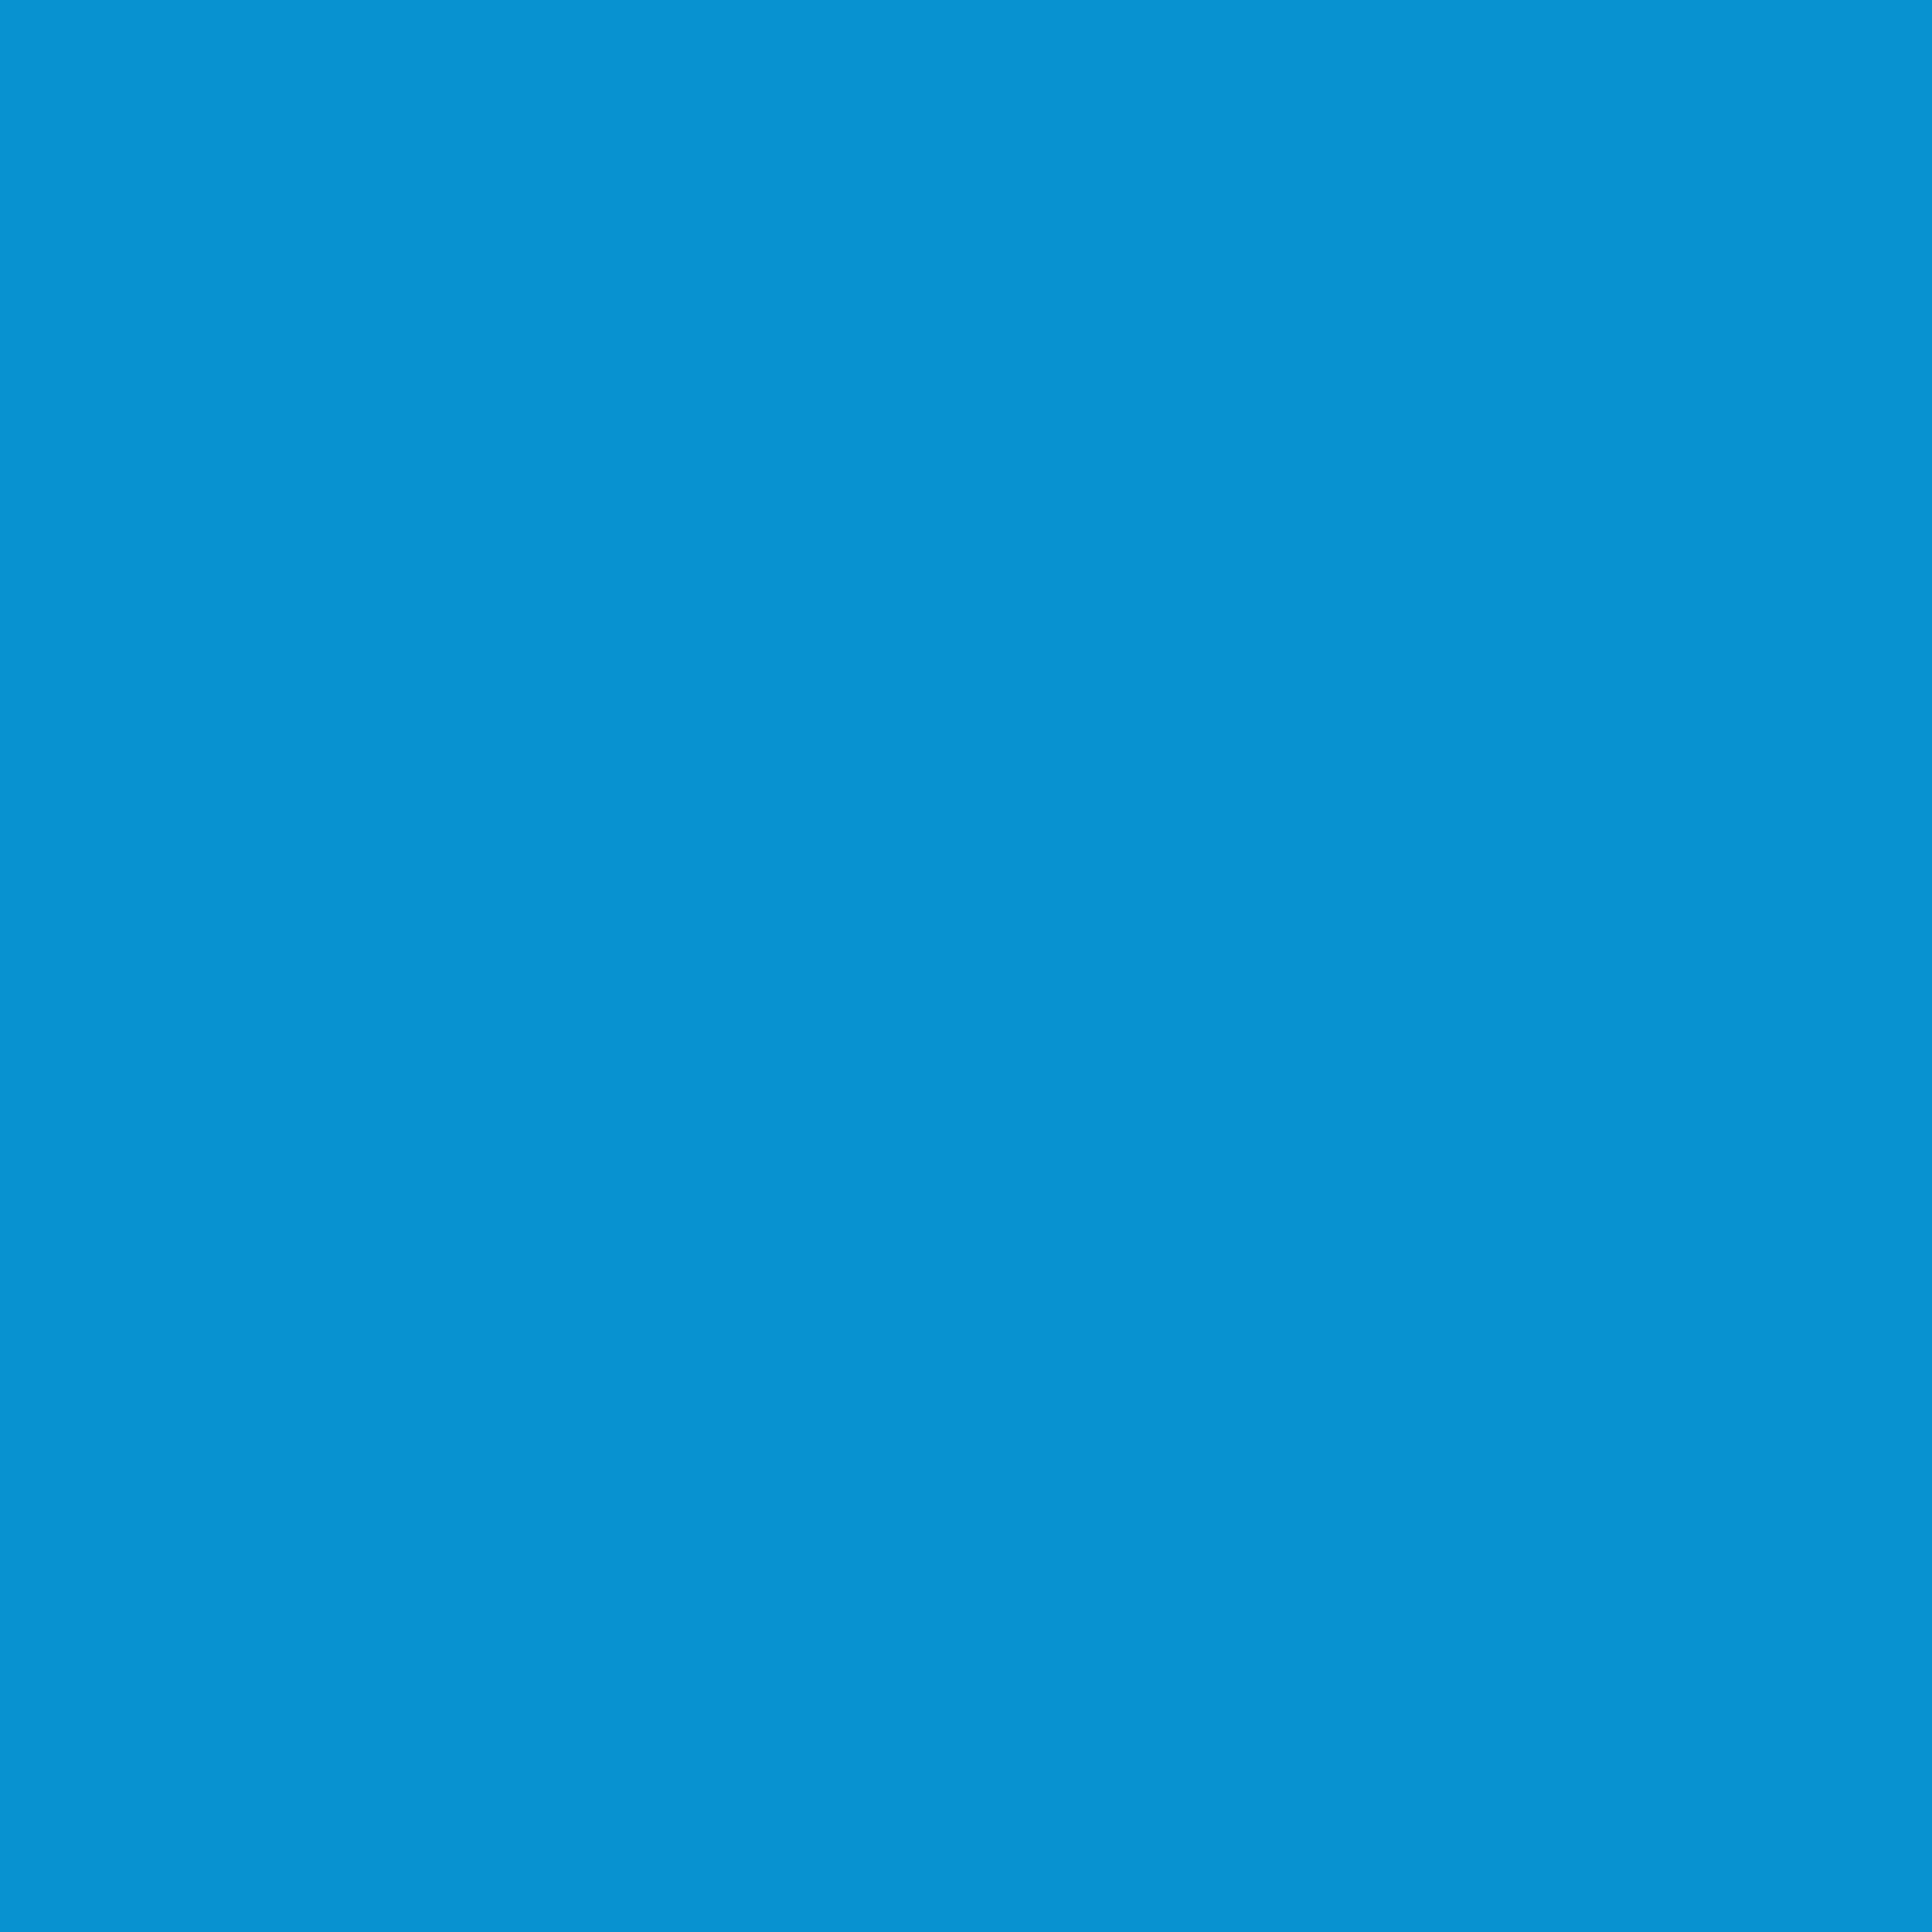 3600x3600 Rich Electric Blue Solid Color Background